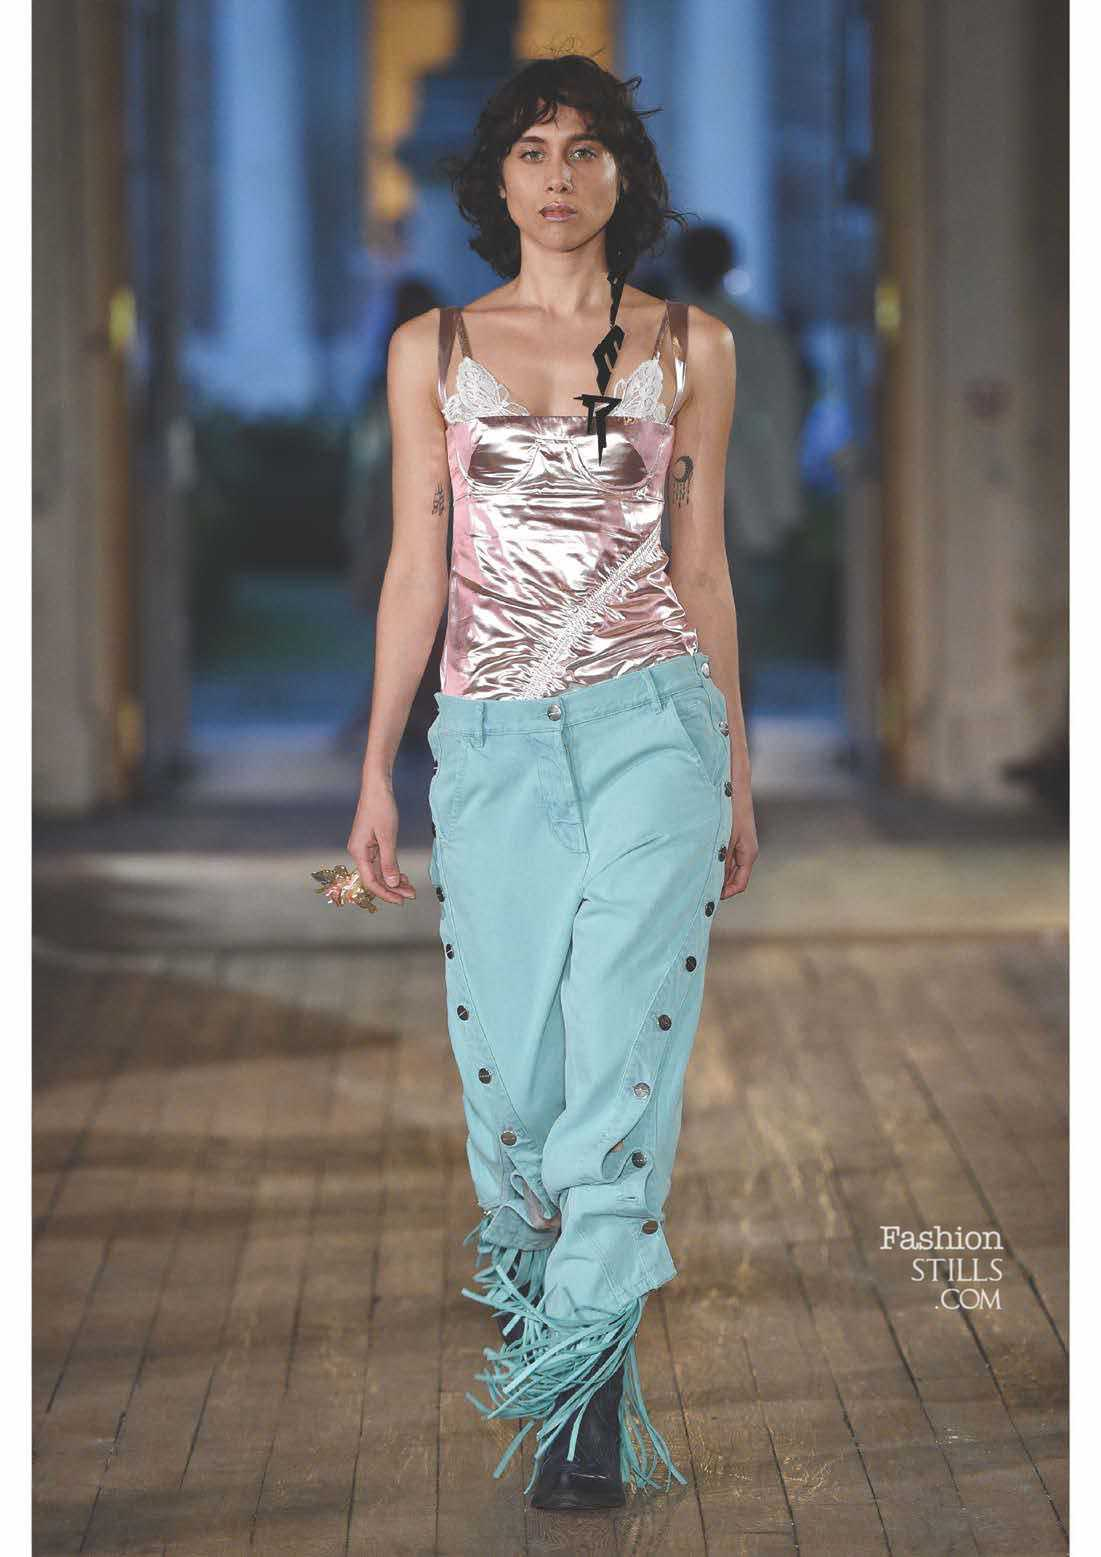 Neith Nyer_1513681565_4e_look-book-_-press-release-ss18-neith-nyer-019.jpg